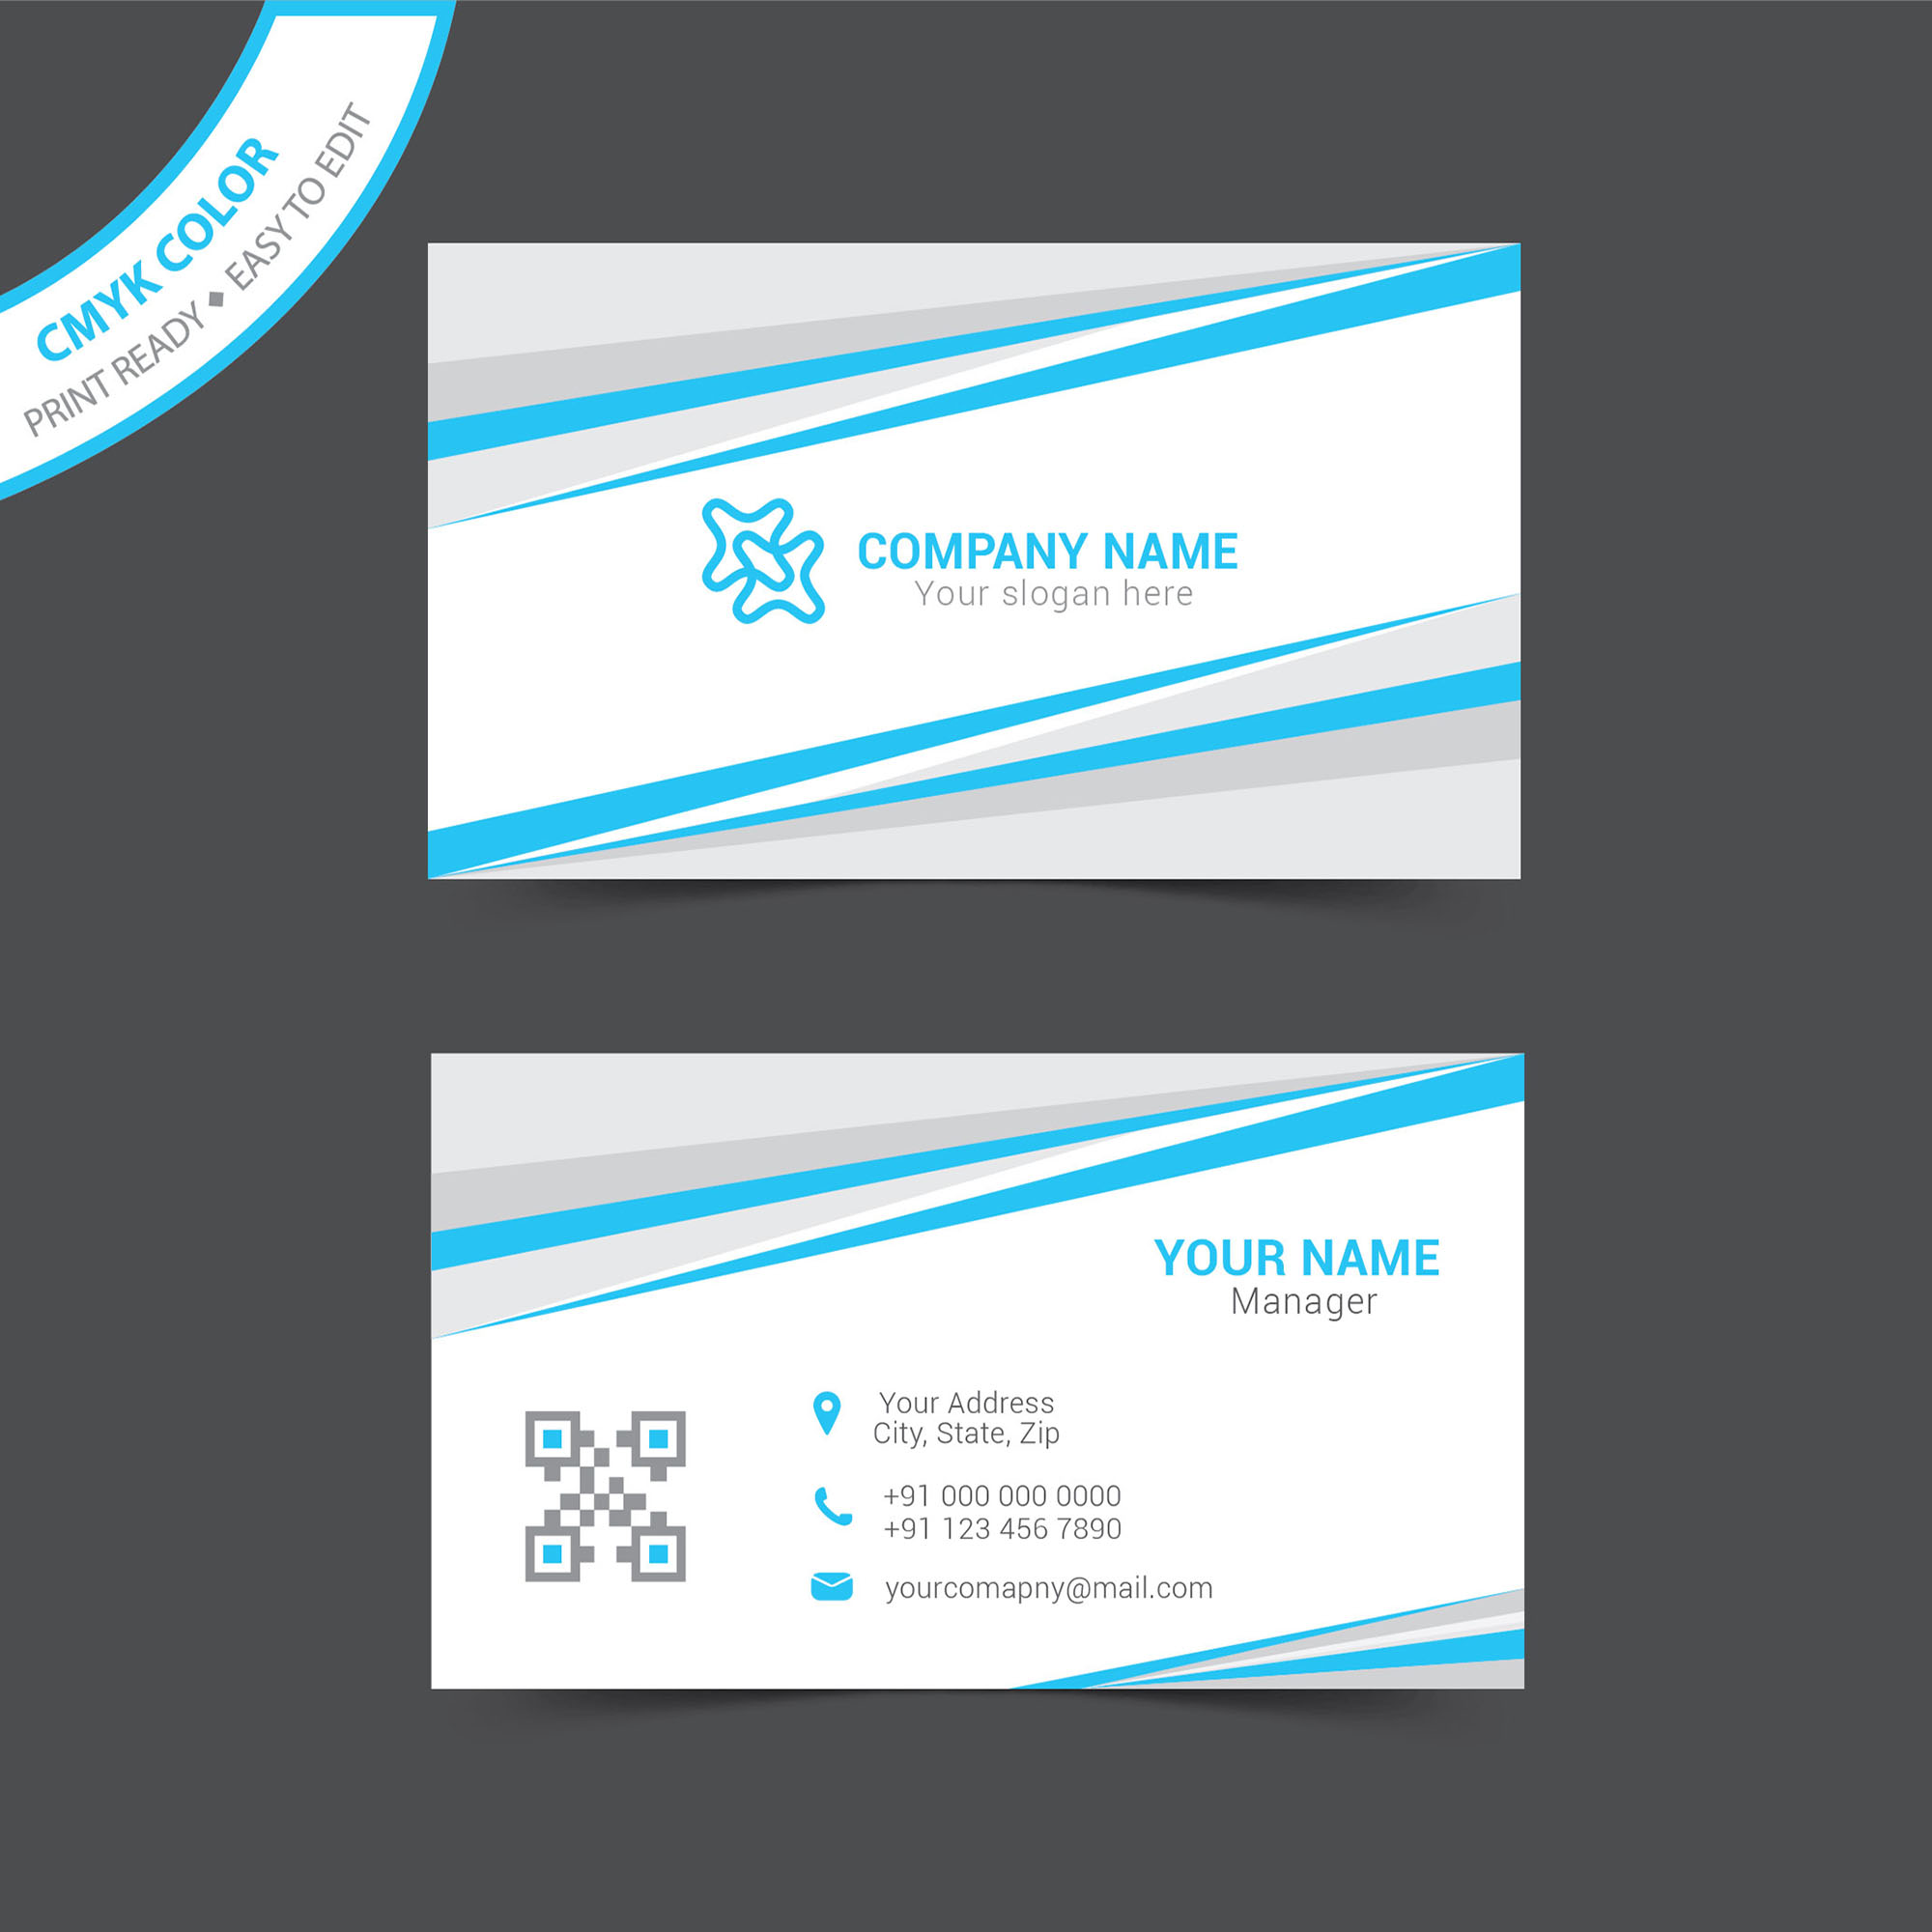 Simple business card template free download wisxi business card business cards business card design business card template design templates reheart Image collections